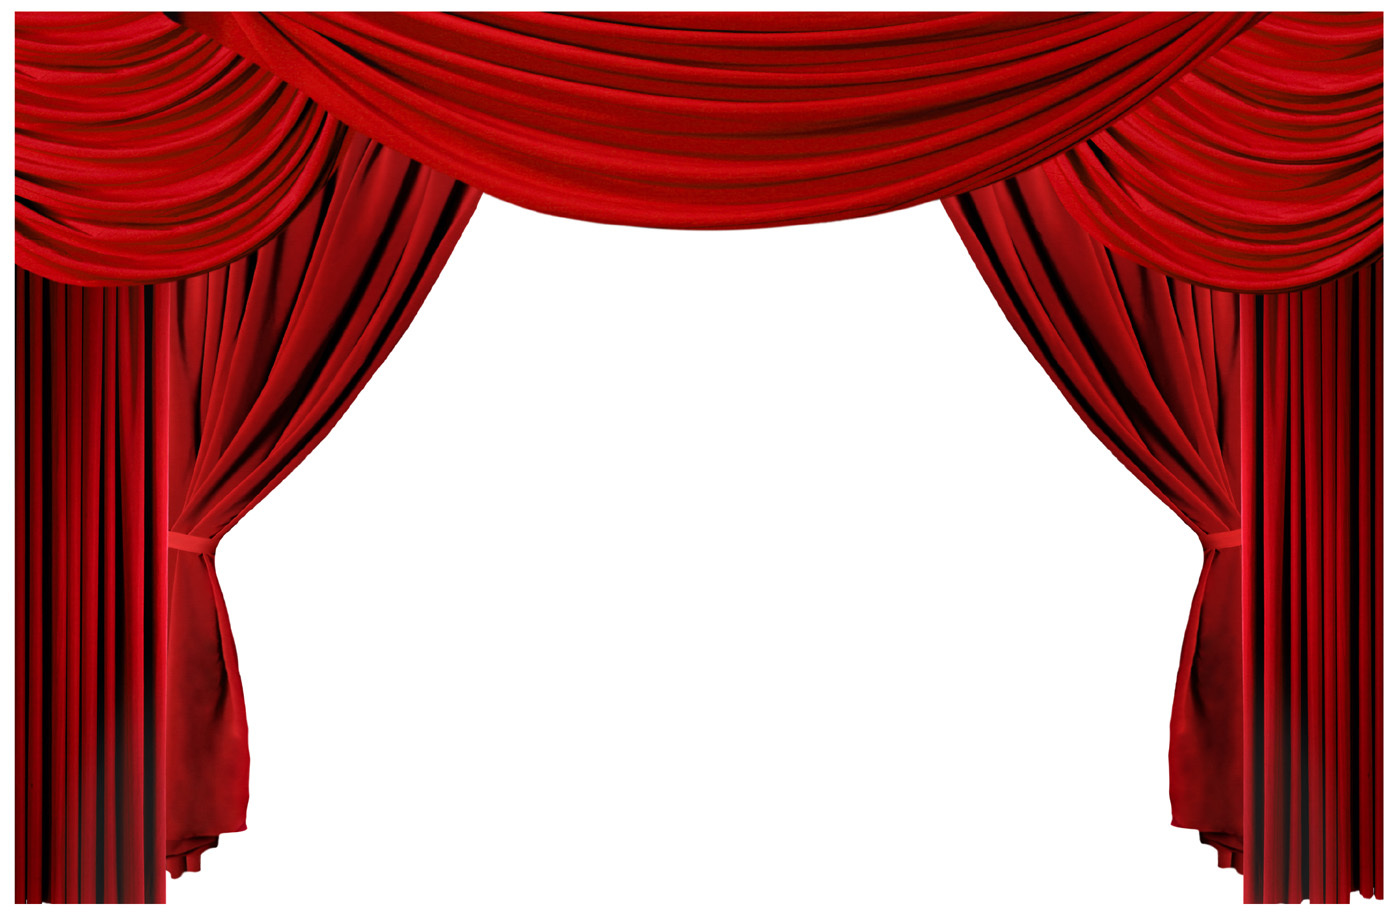 Theater Curtain Clipart - Clipart Kid